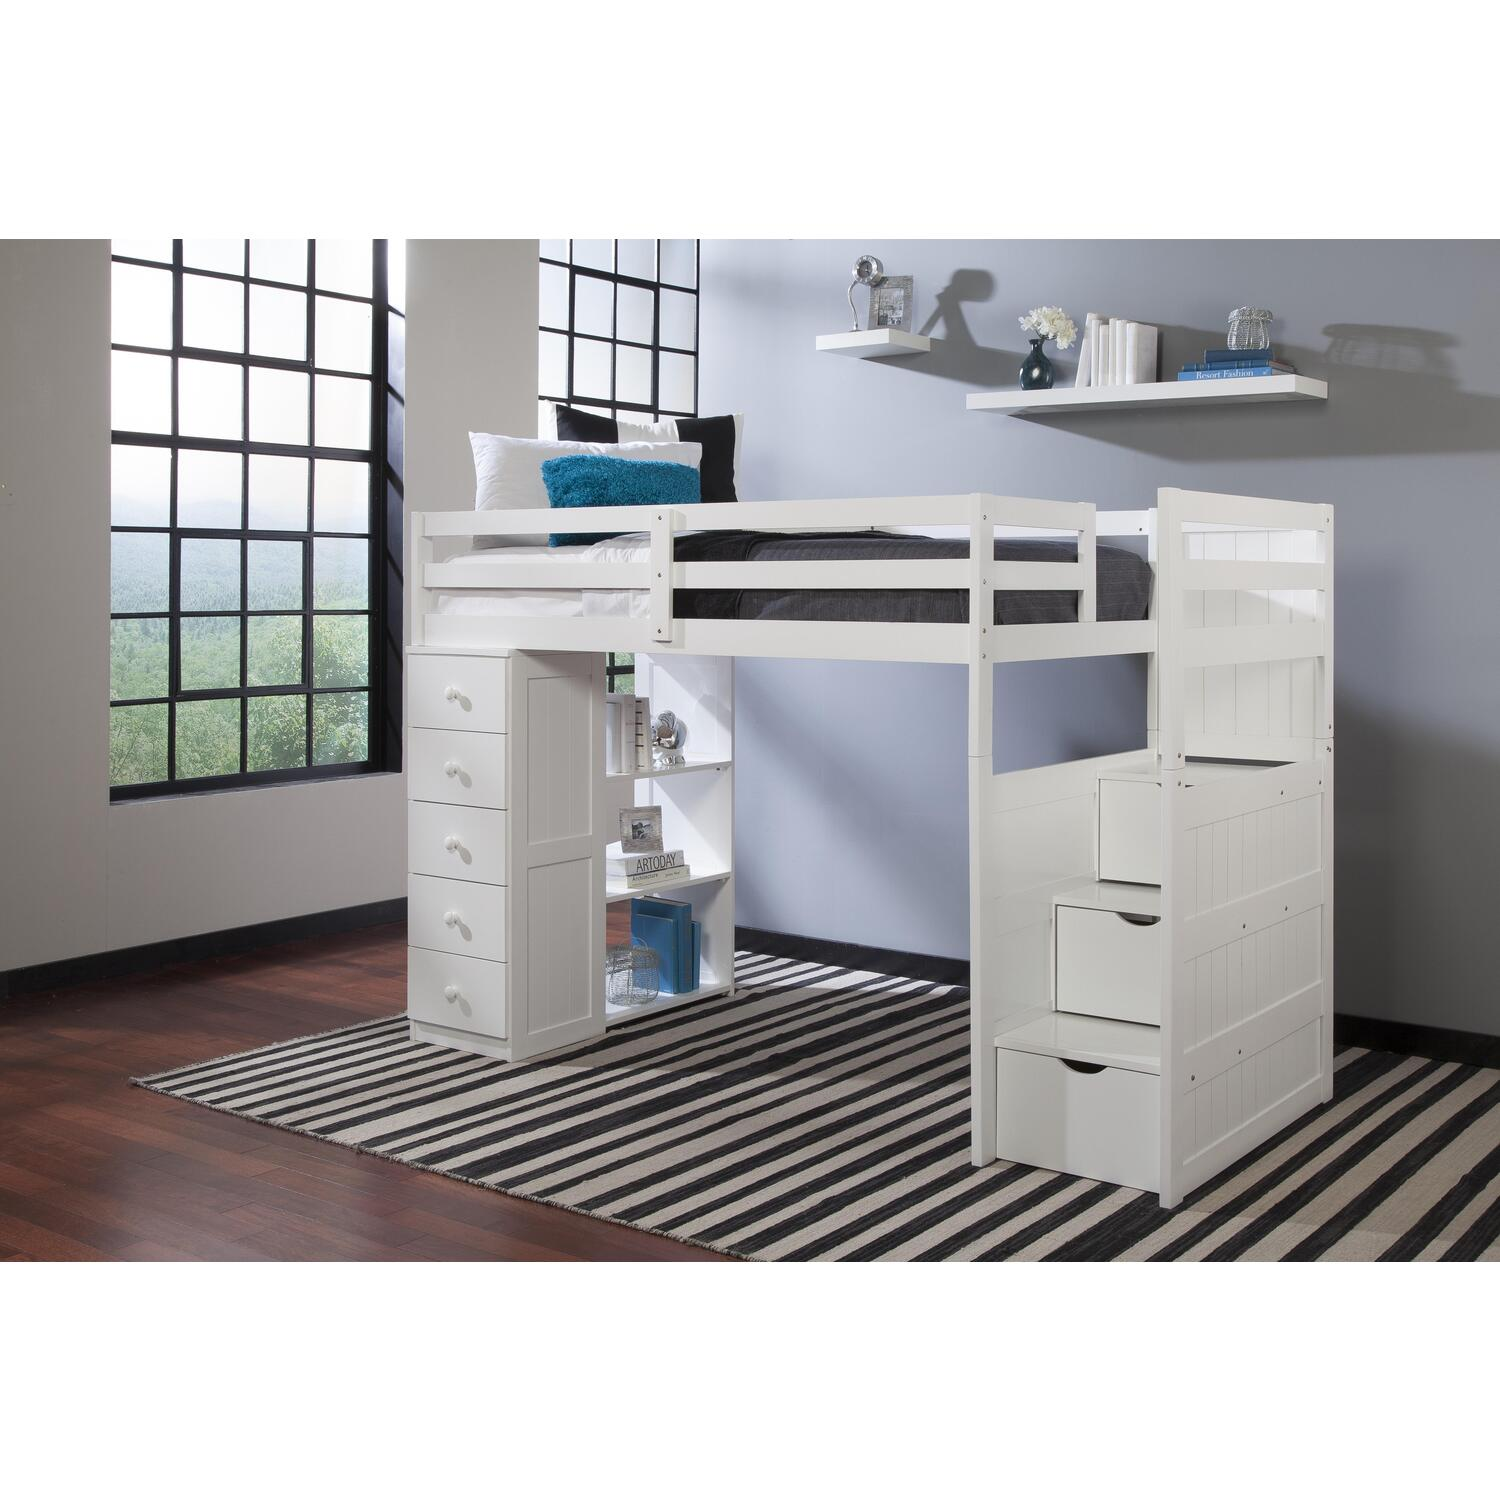 Canwood Canwood Mountaineer Twin Loft Bed With Storage